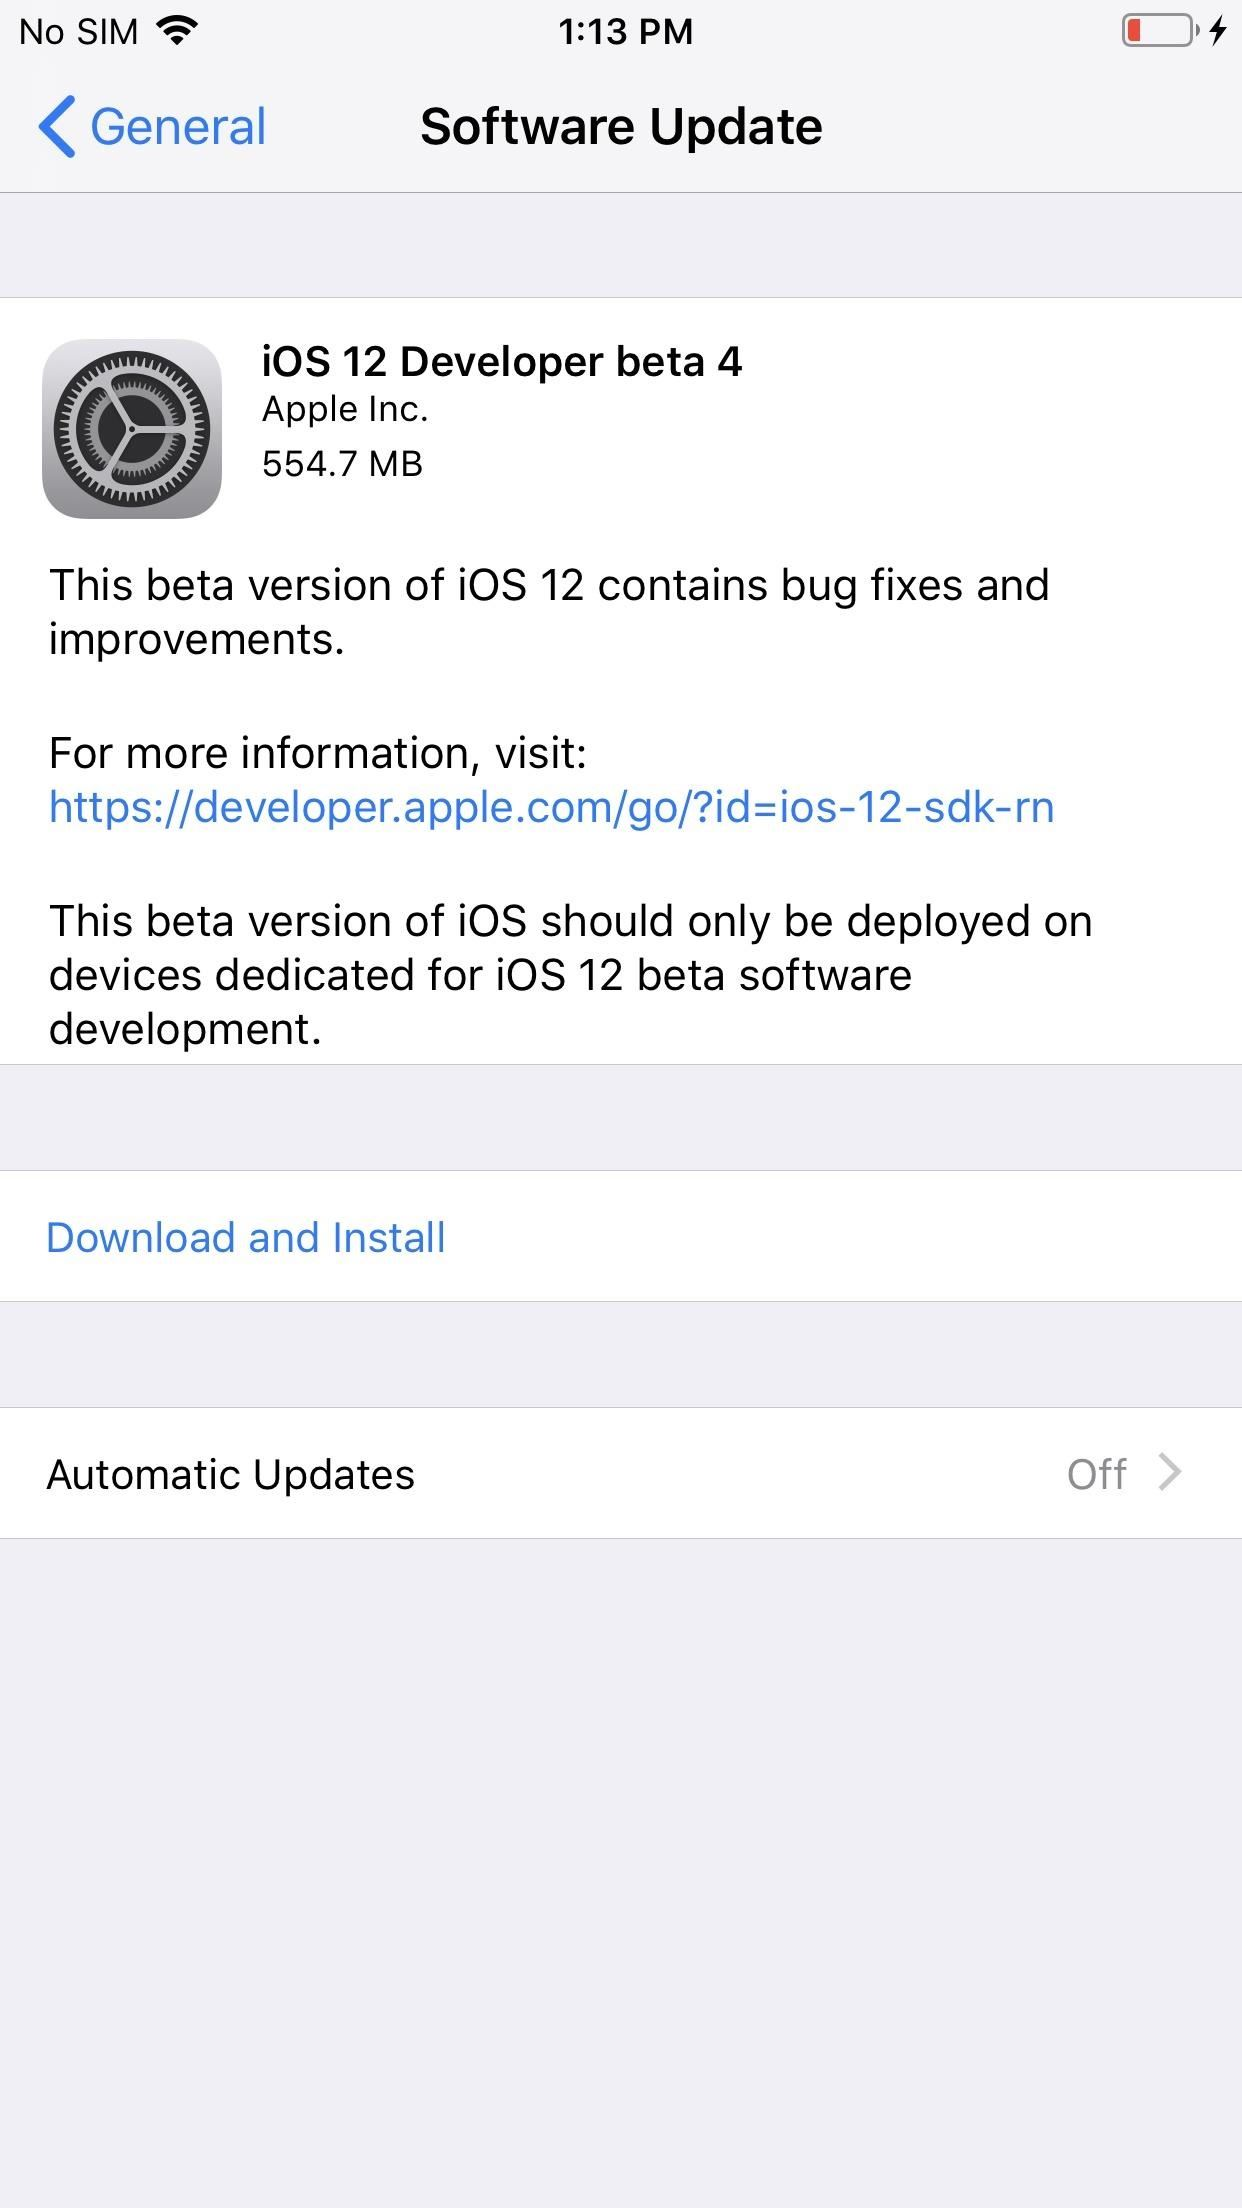 iOS 12 Beta 4 for iPhone for Developers